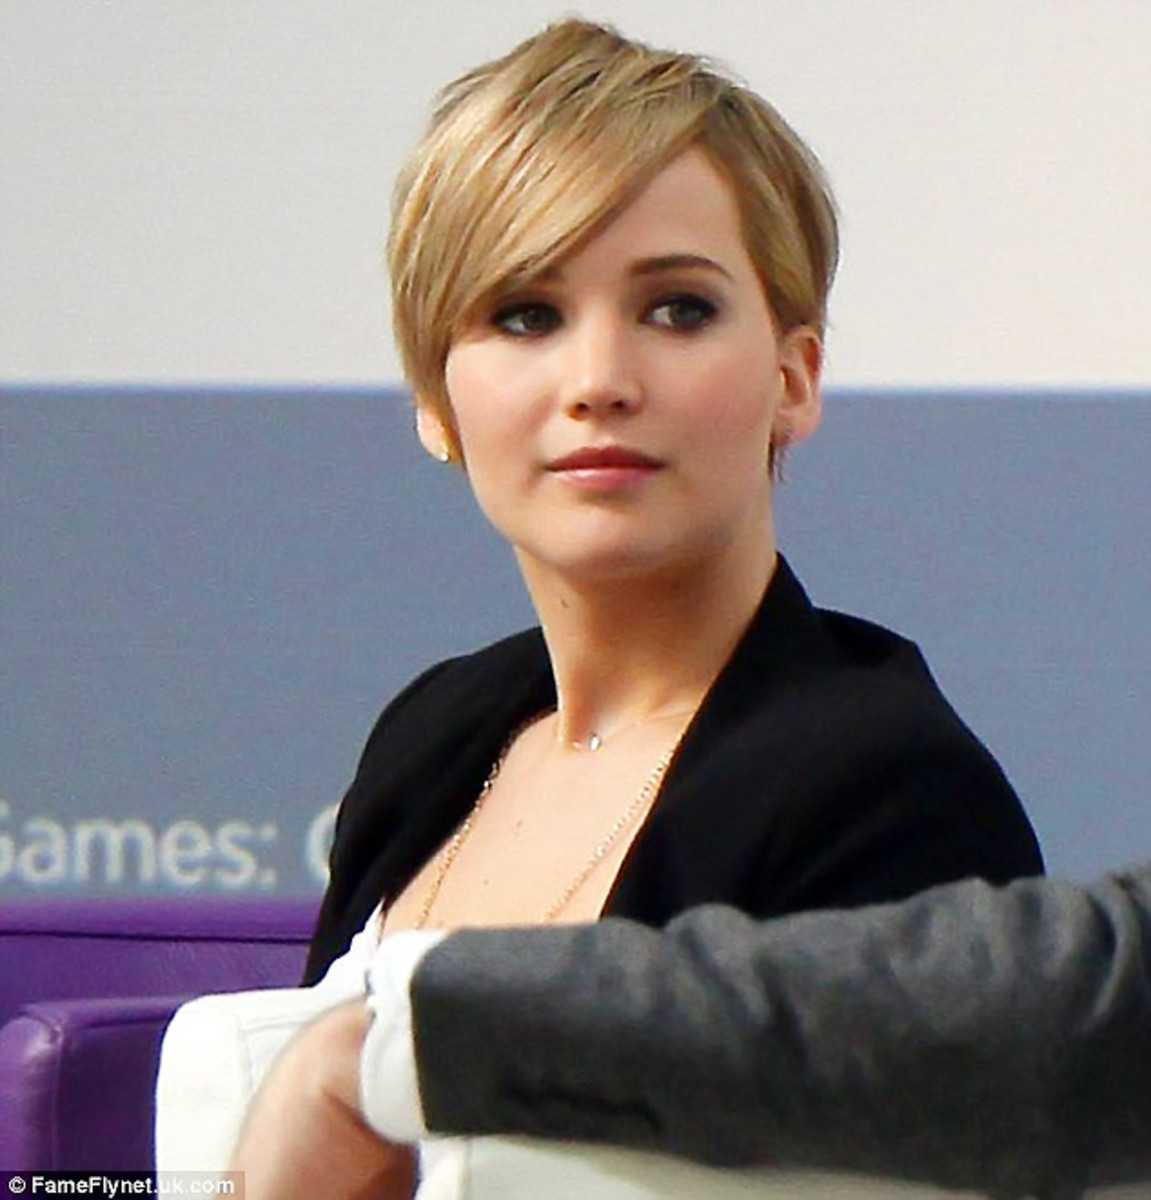 Compare Amp Contrast Jennifer Lawrence Short Hair Vs